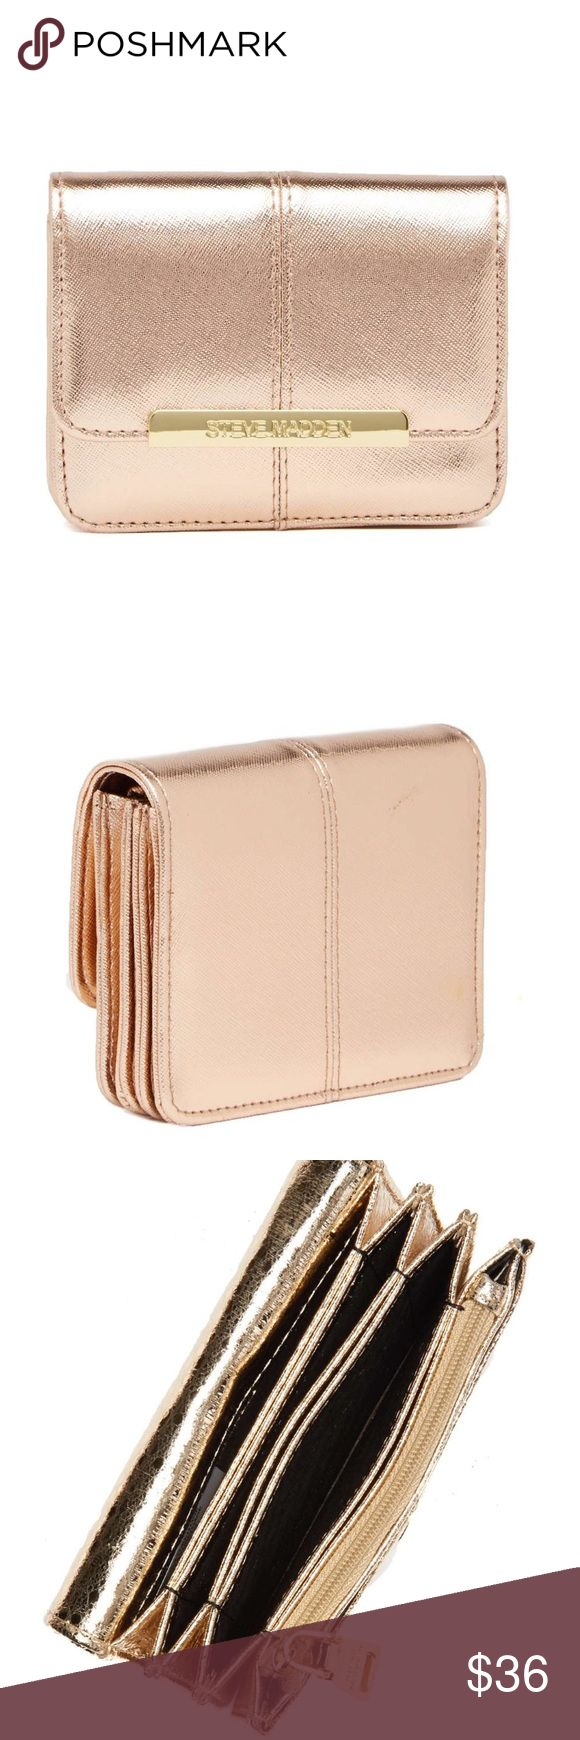 ❗️DON'T BUY ON HOLD❗️Steve Madden wallet NWT Brand new Steve Madden Wallet! Never opened, has tags, and comes with a keychain!color is rose gold Steve Madden Accessories